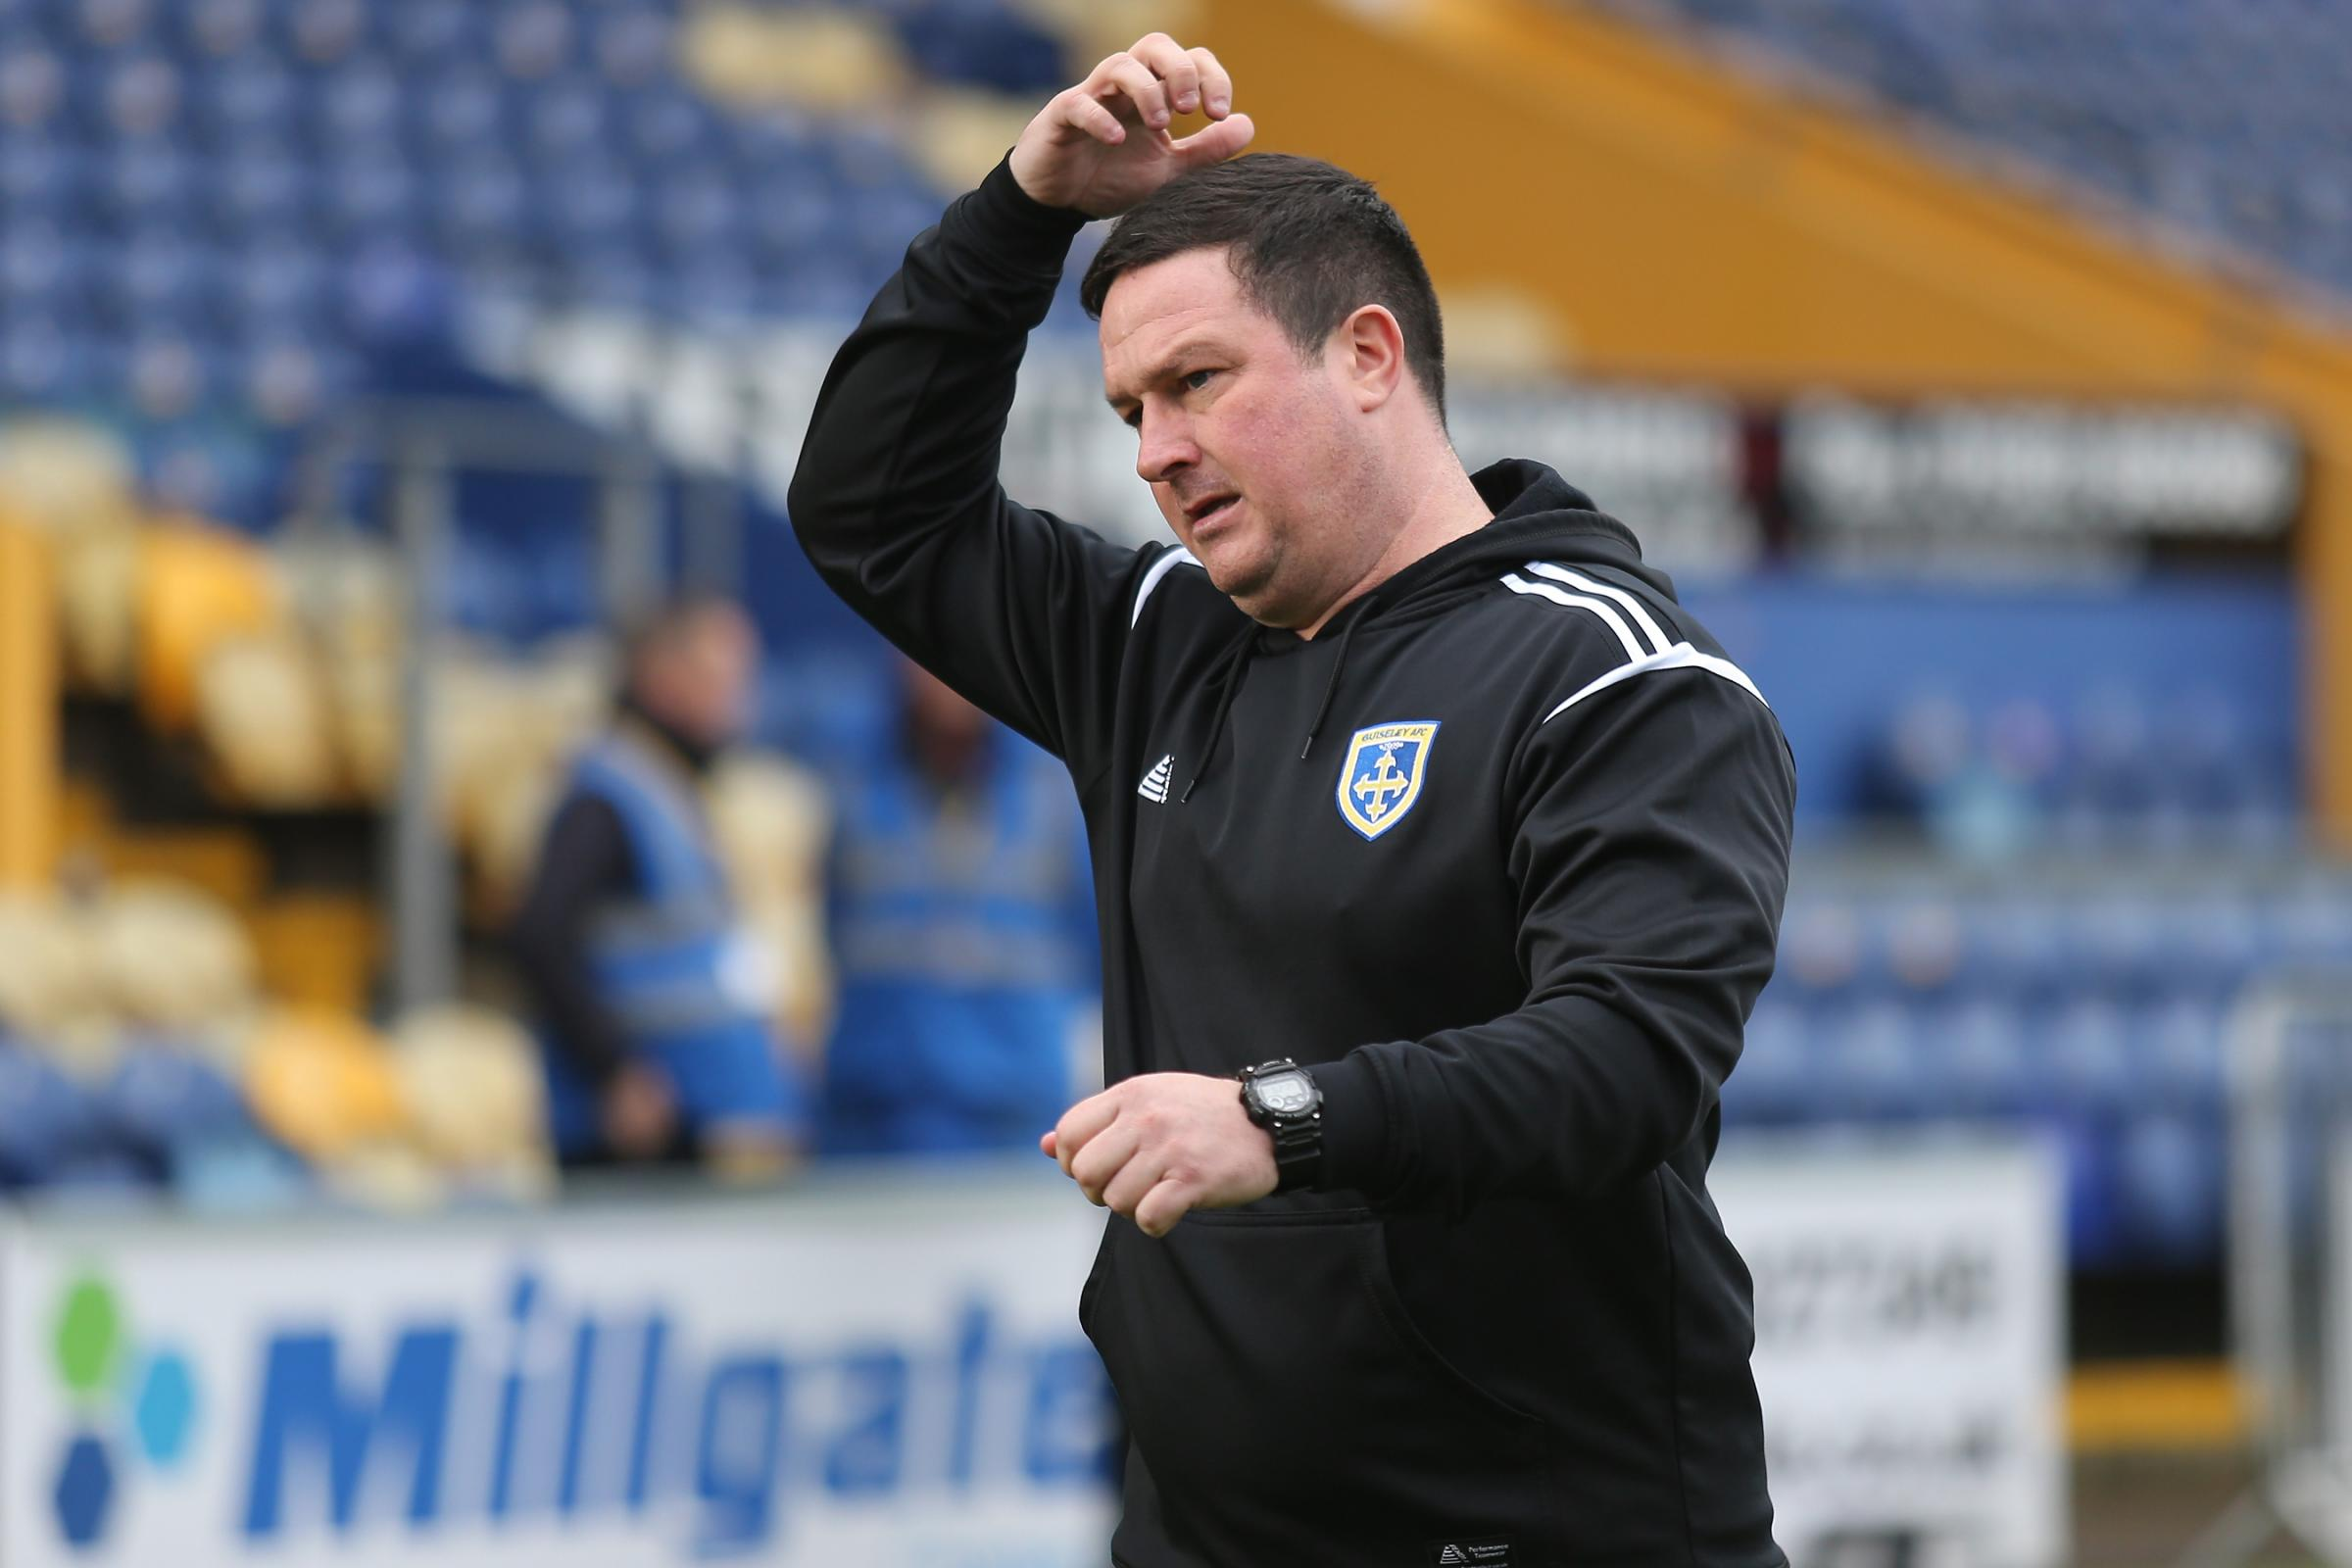 Guiseley boss Paul Cox has plenty to think about